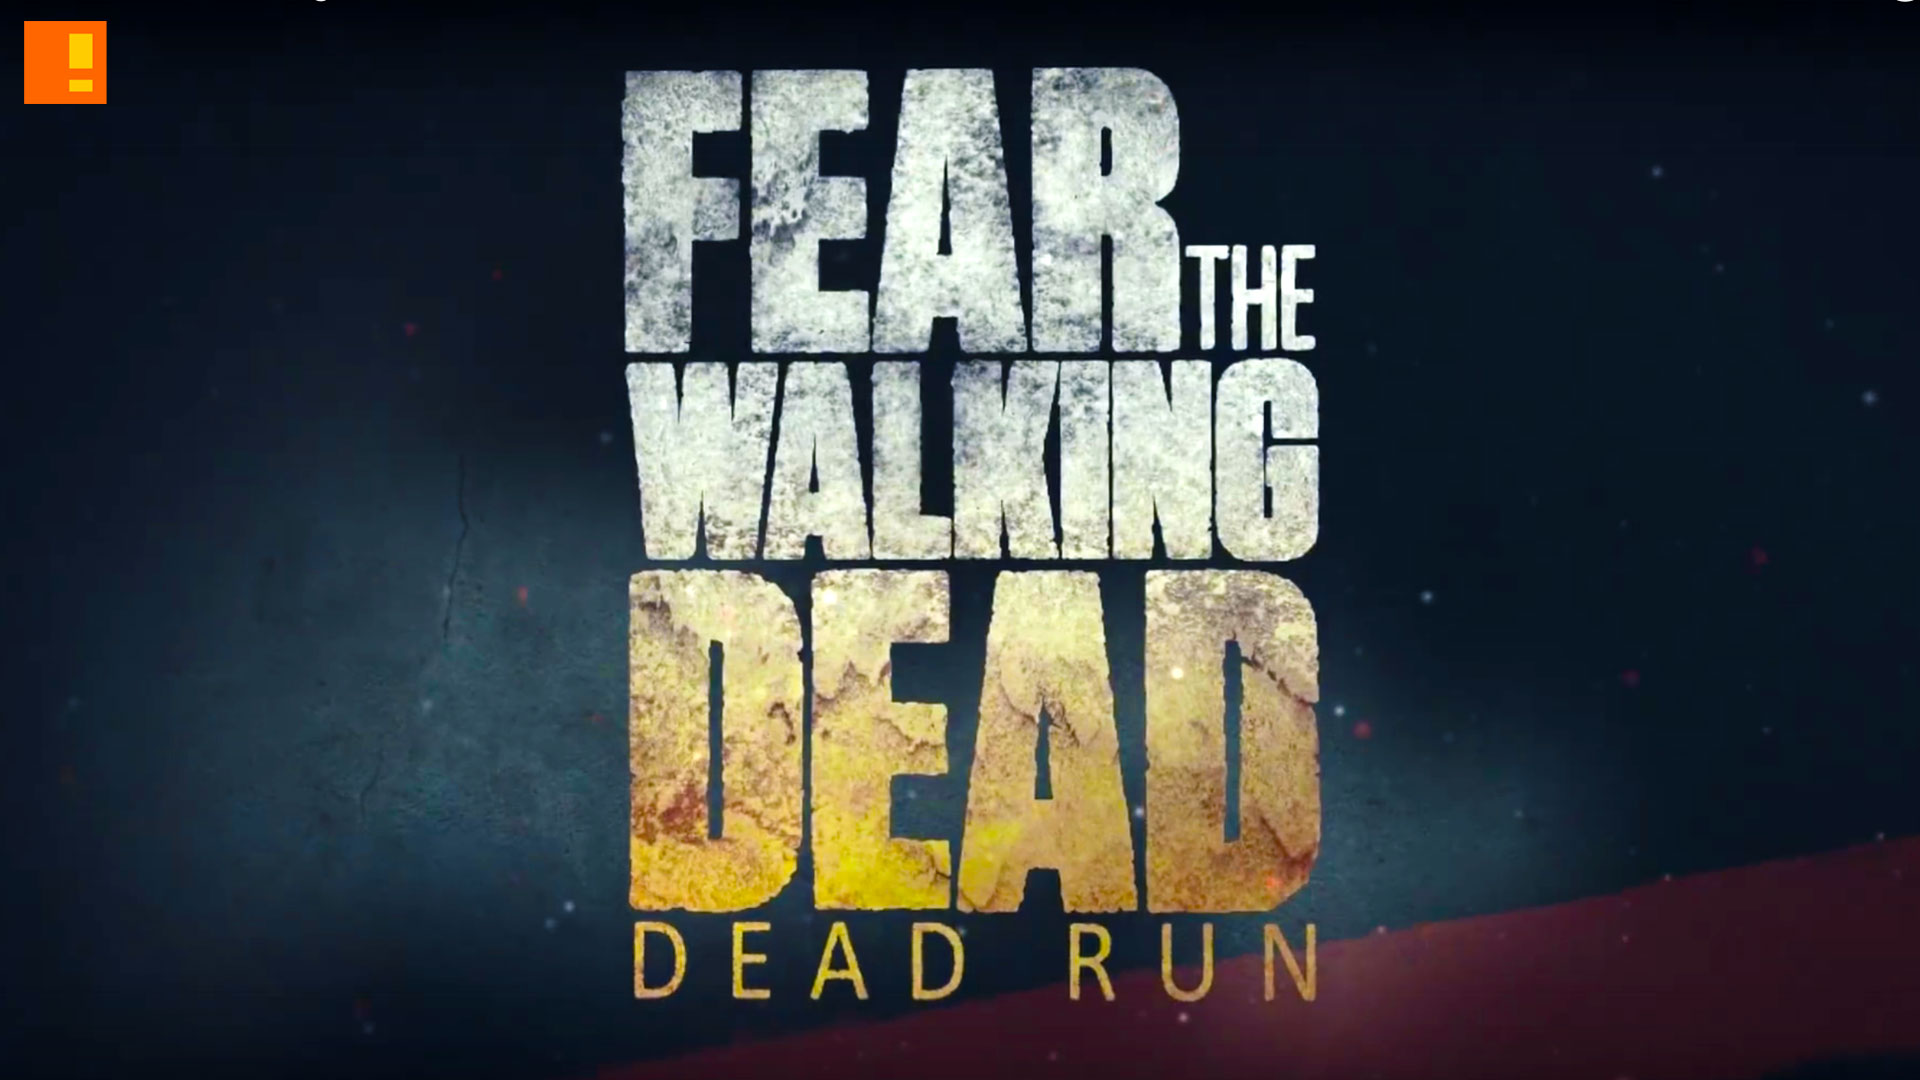 dead run, fear the walking dead, the walking dead, amc, versus evil,los angeles, launch trailer, trailer, the action pixel, @theactionpixel